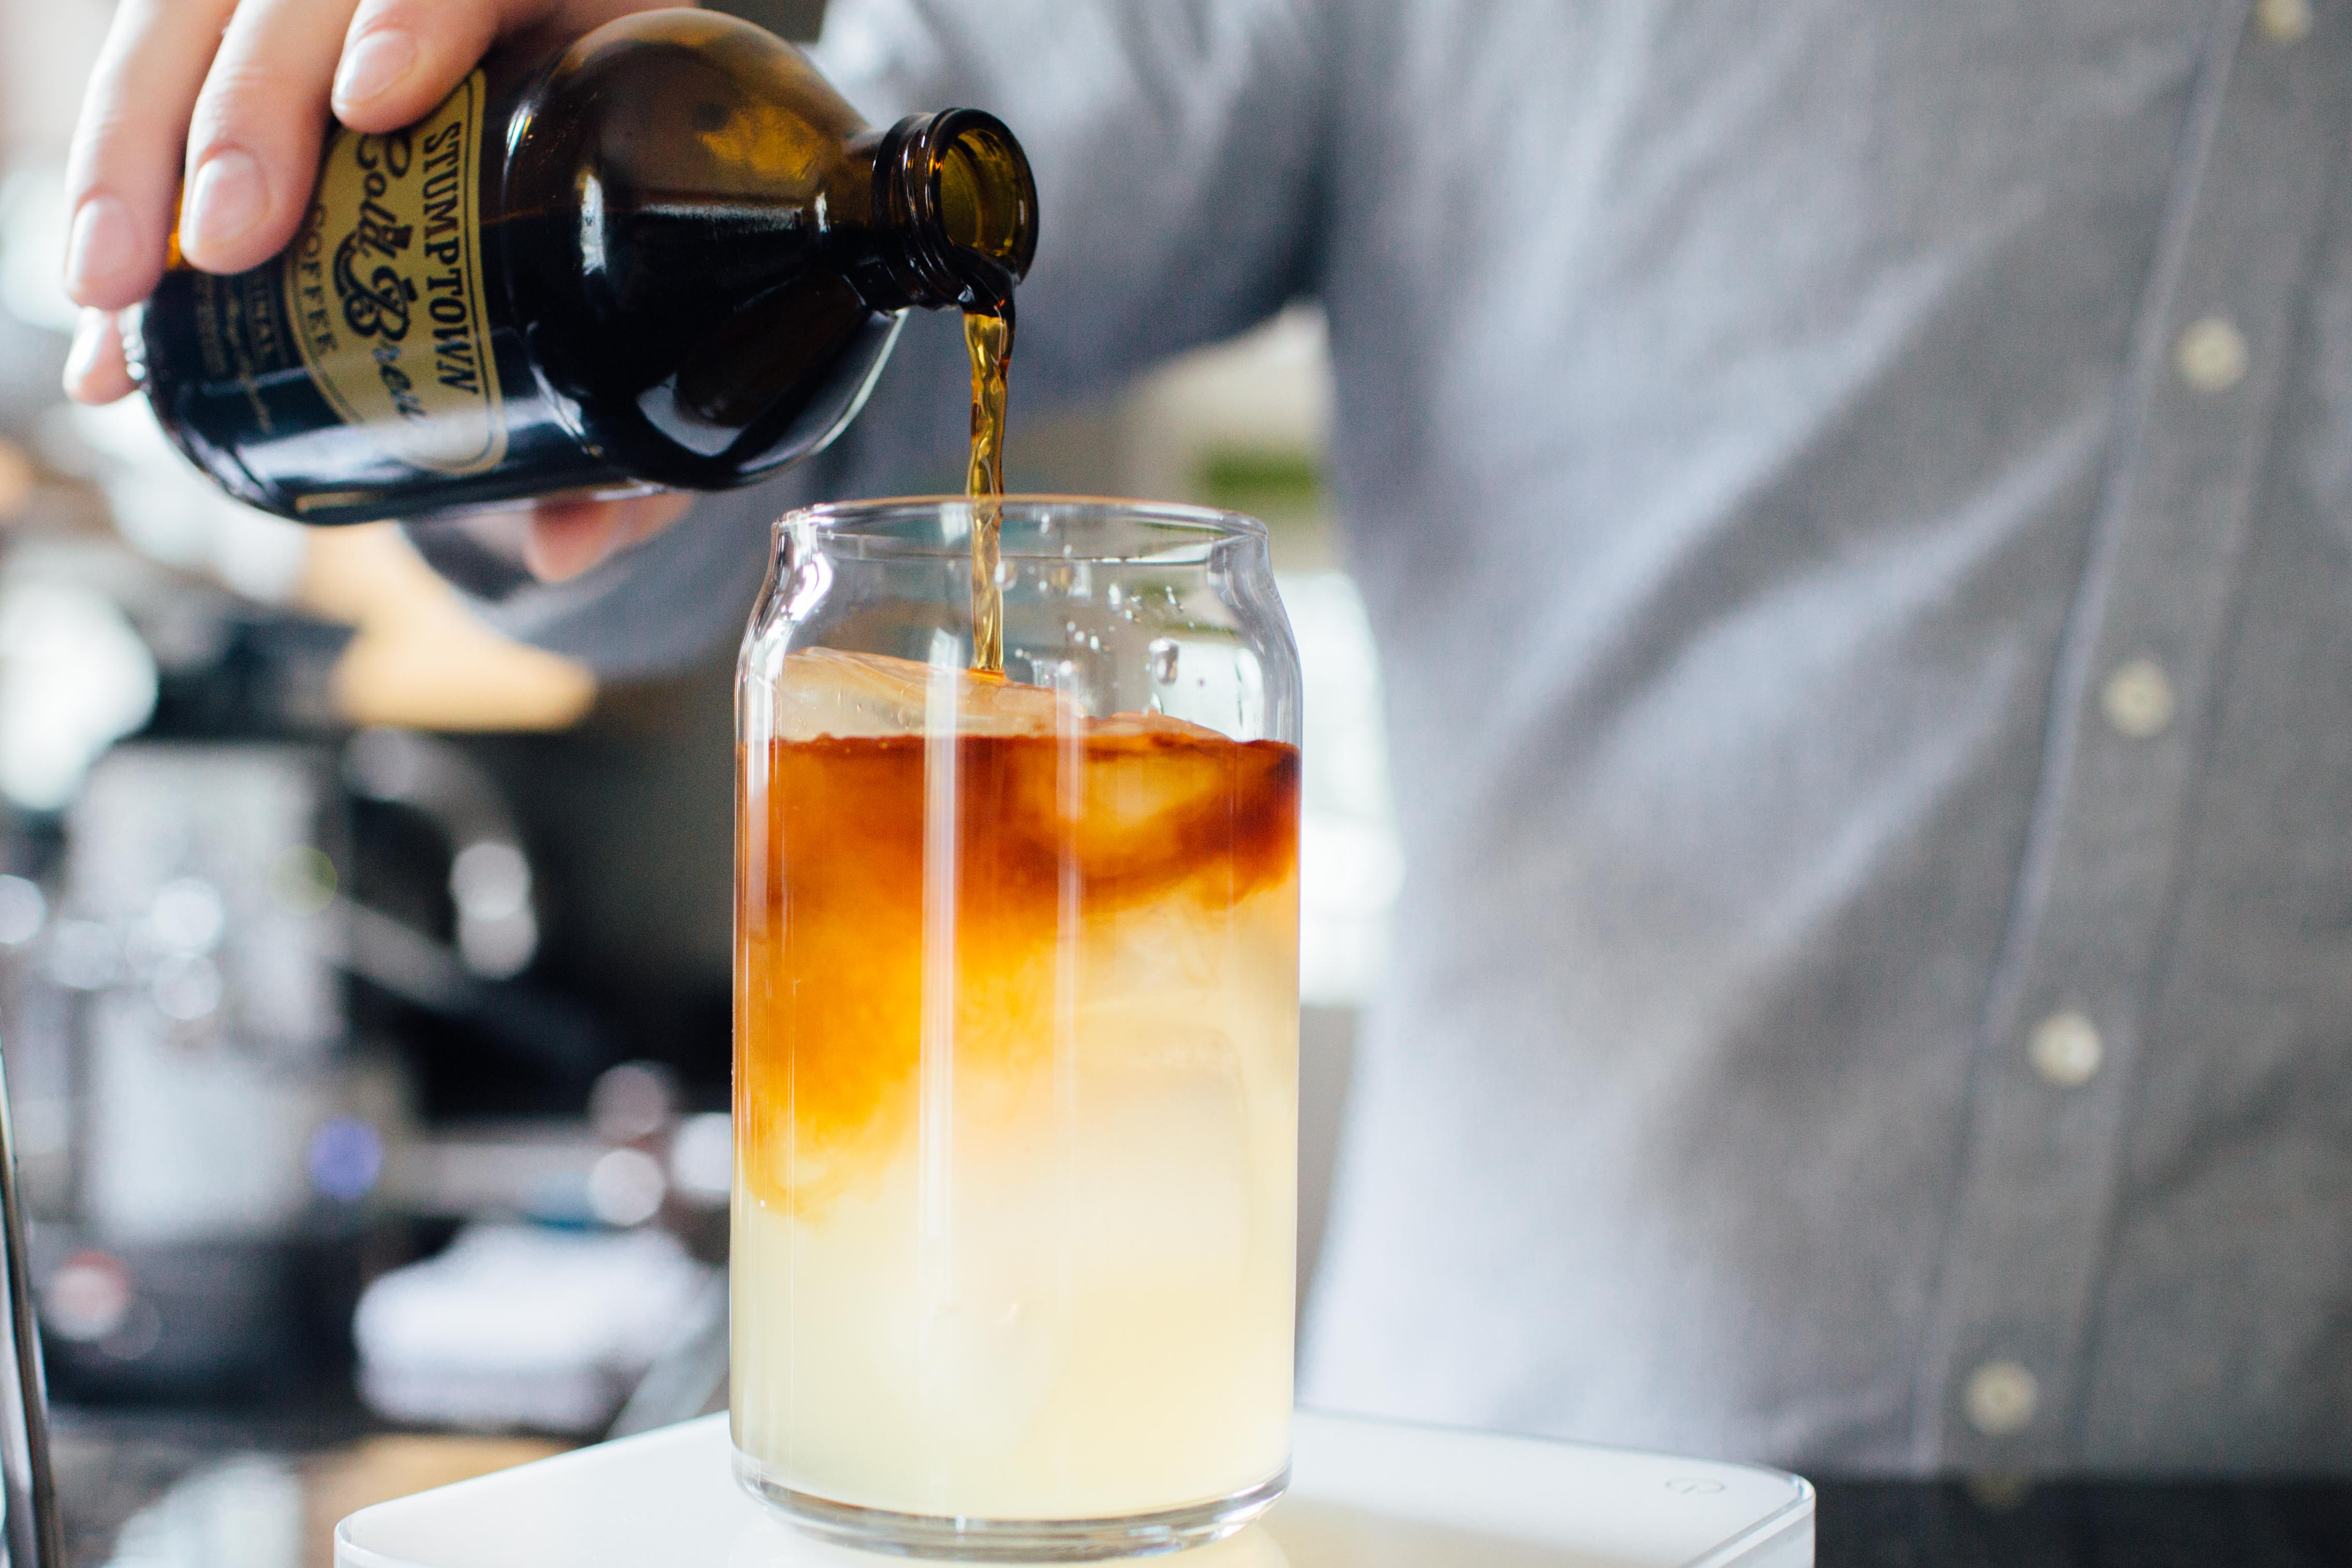 Cold Brew with a Twist #CoffeeLemonade photo